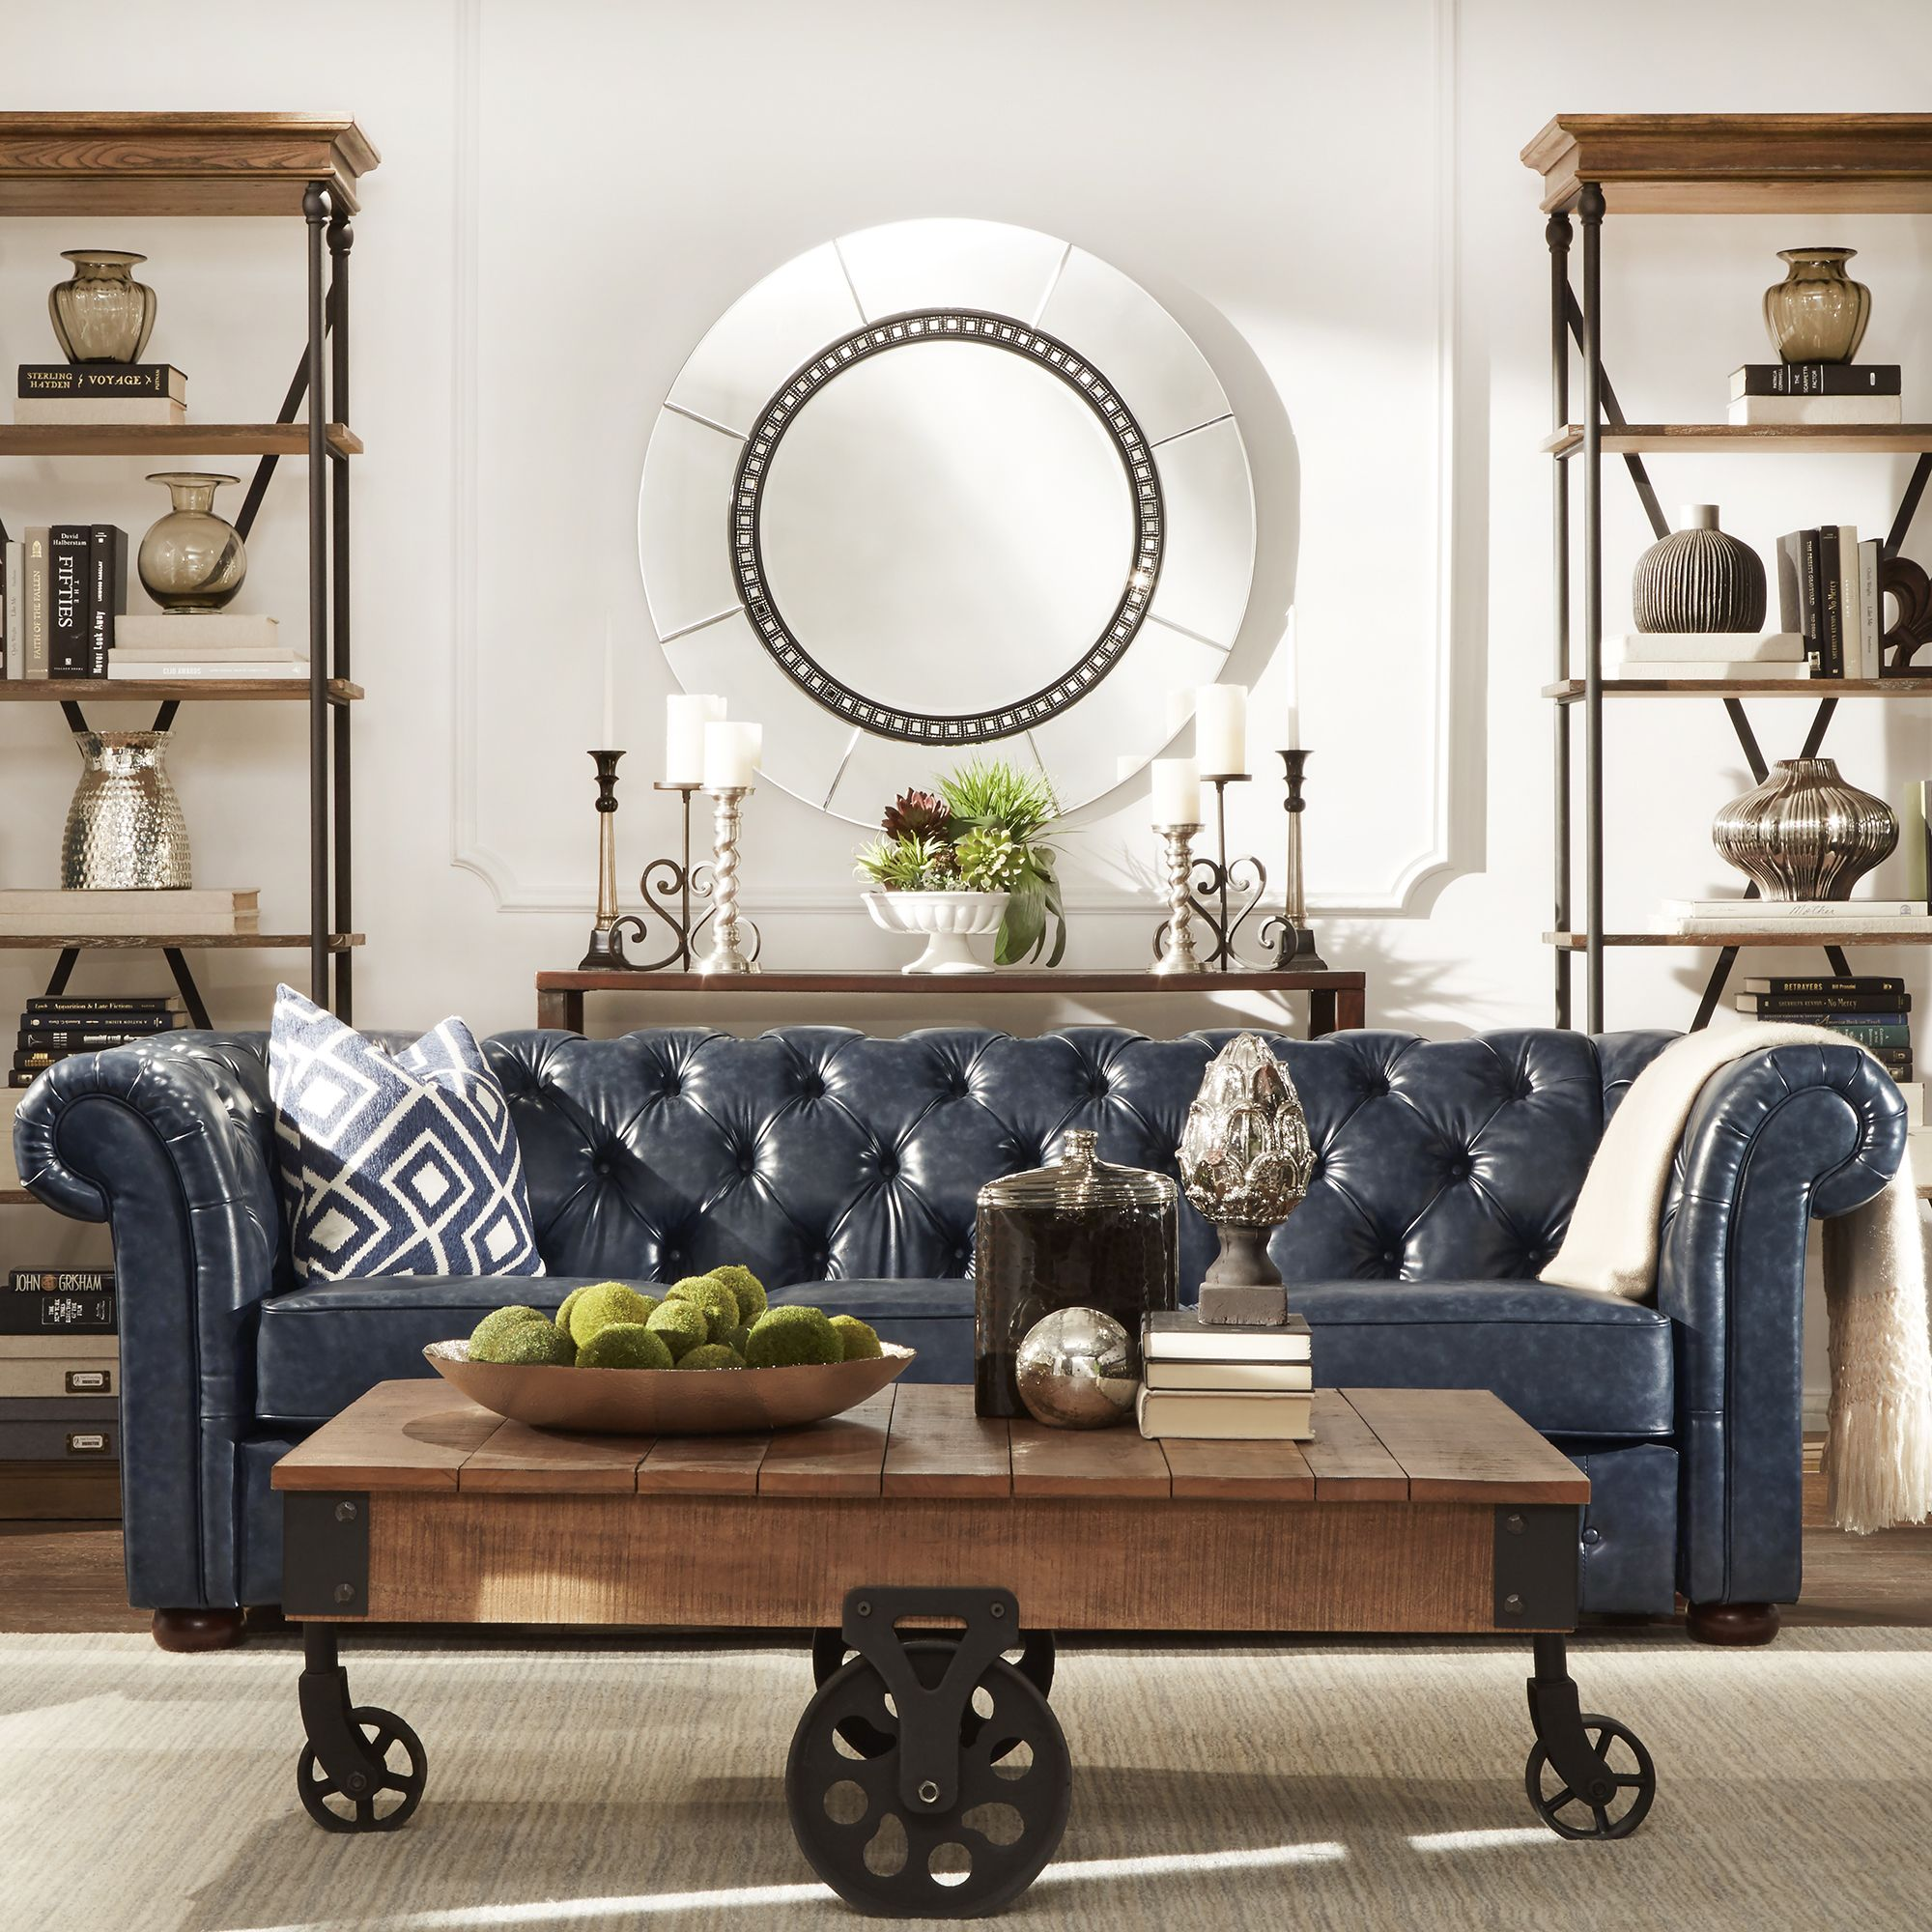 Blue apron edmonton - Signal Hills Knightsbridge Navy Blue Bonded Leather Tufted Scroll Arm Chesterfield Seating By Signal Hills